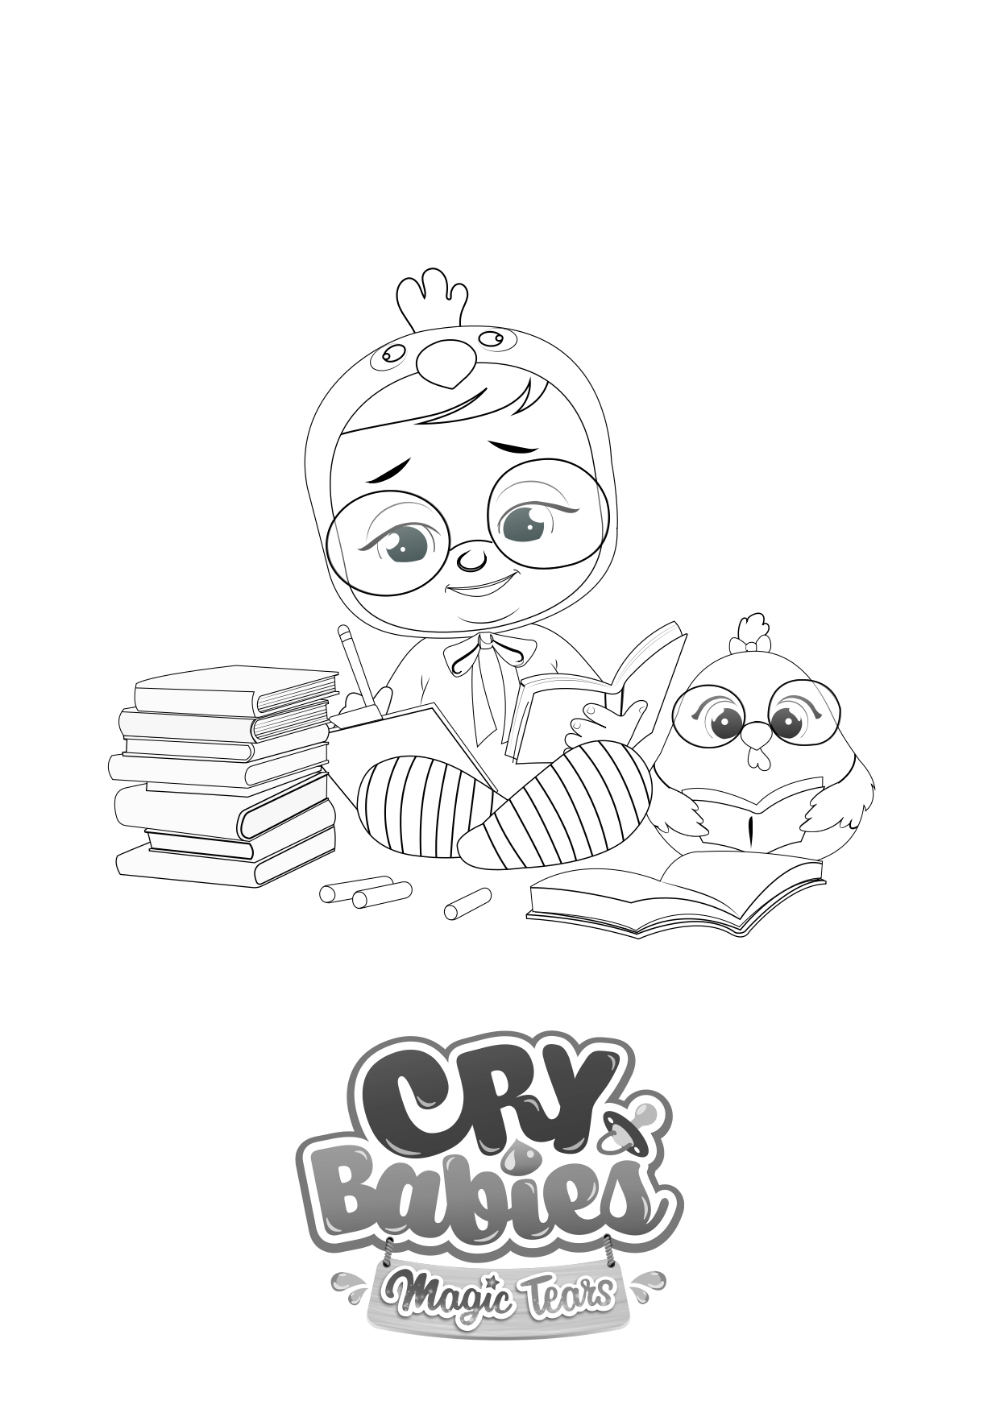 Colorions Cry Babies Magic Tears En 2020 Cry Baby Bisounours Coloriage